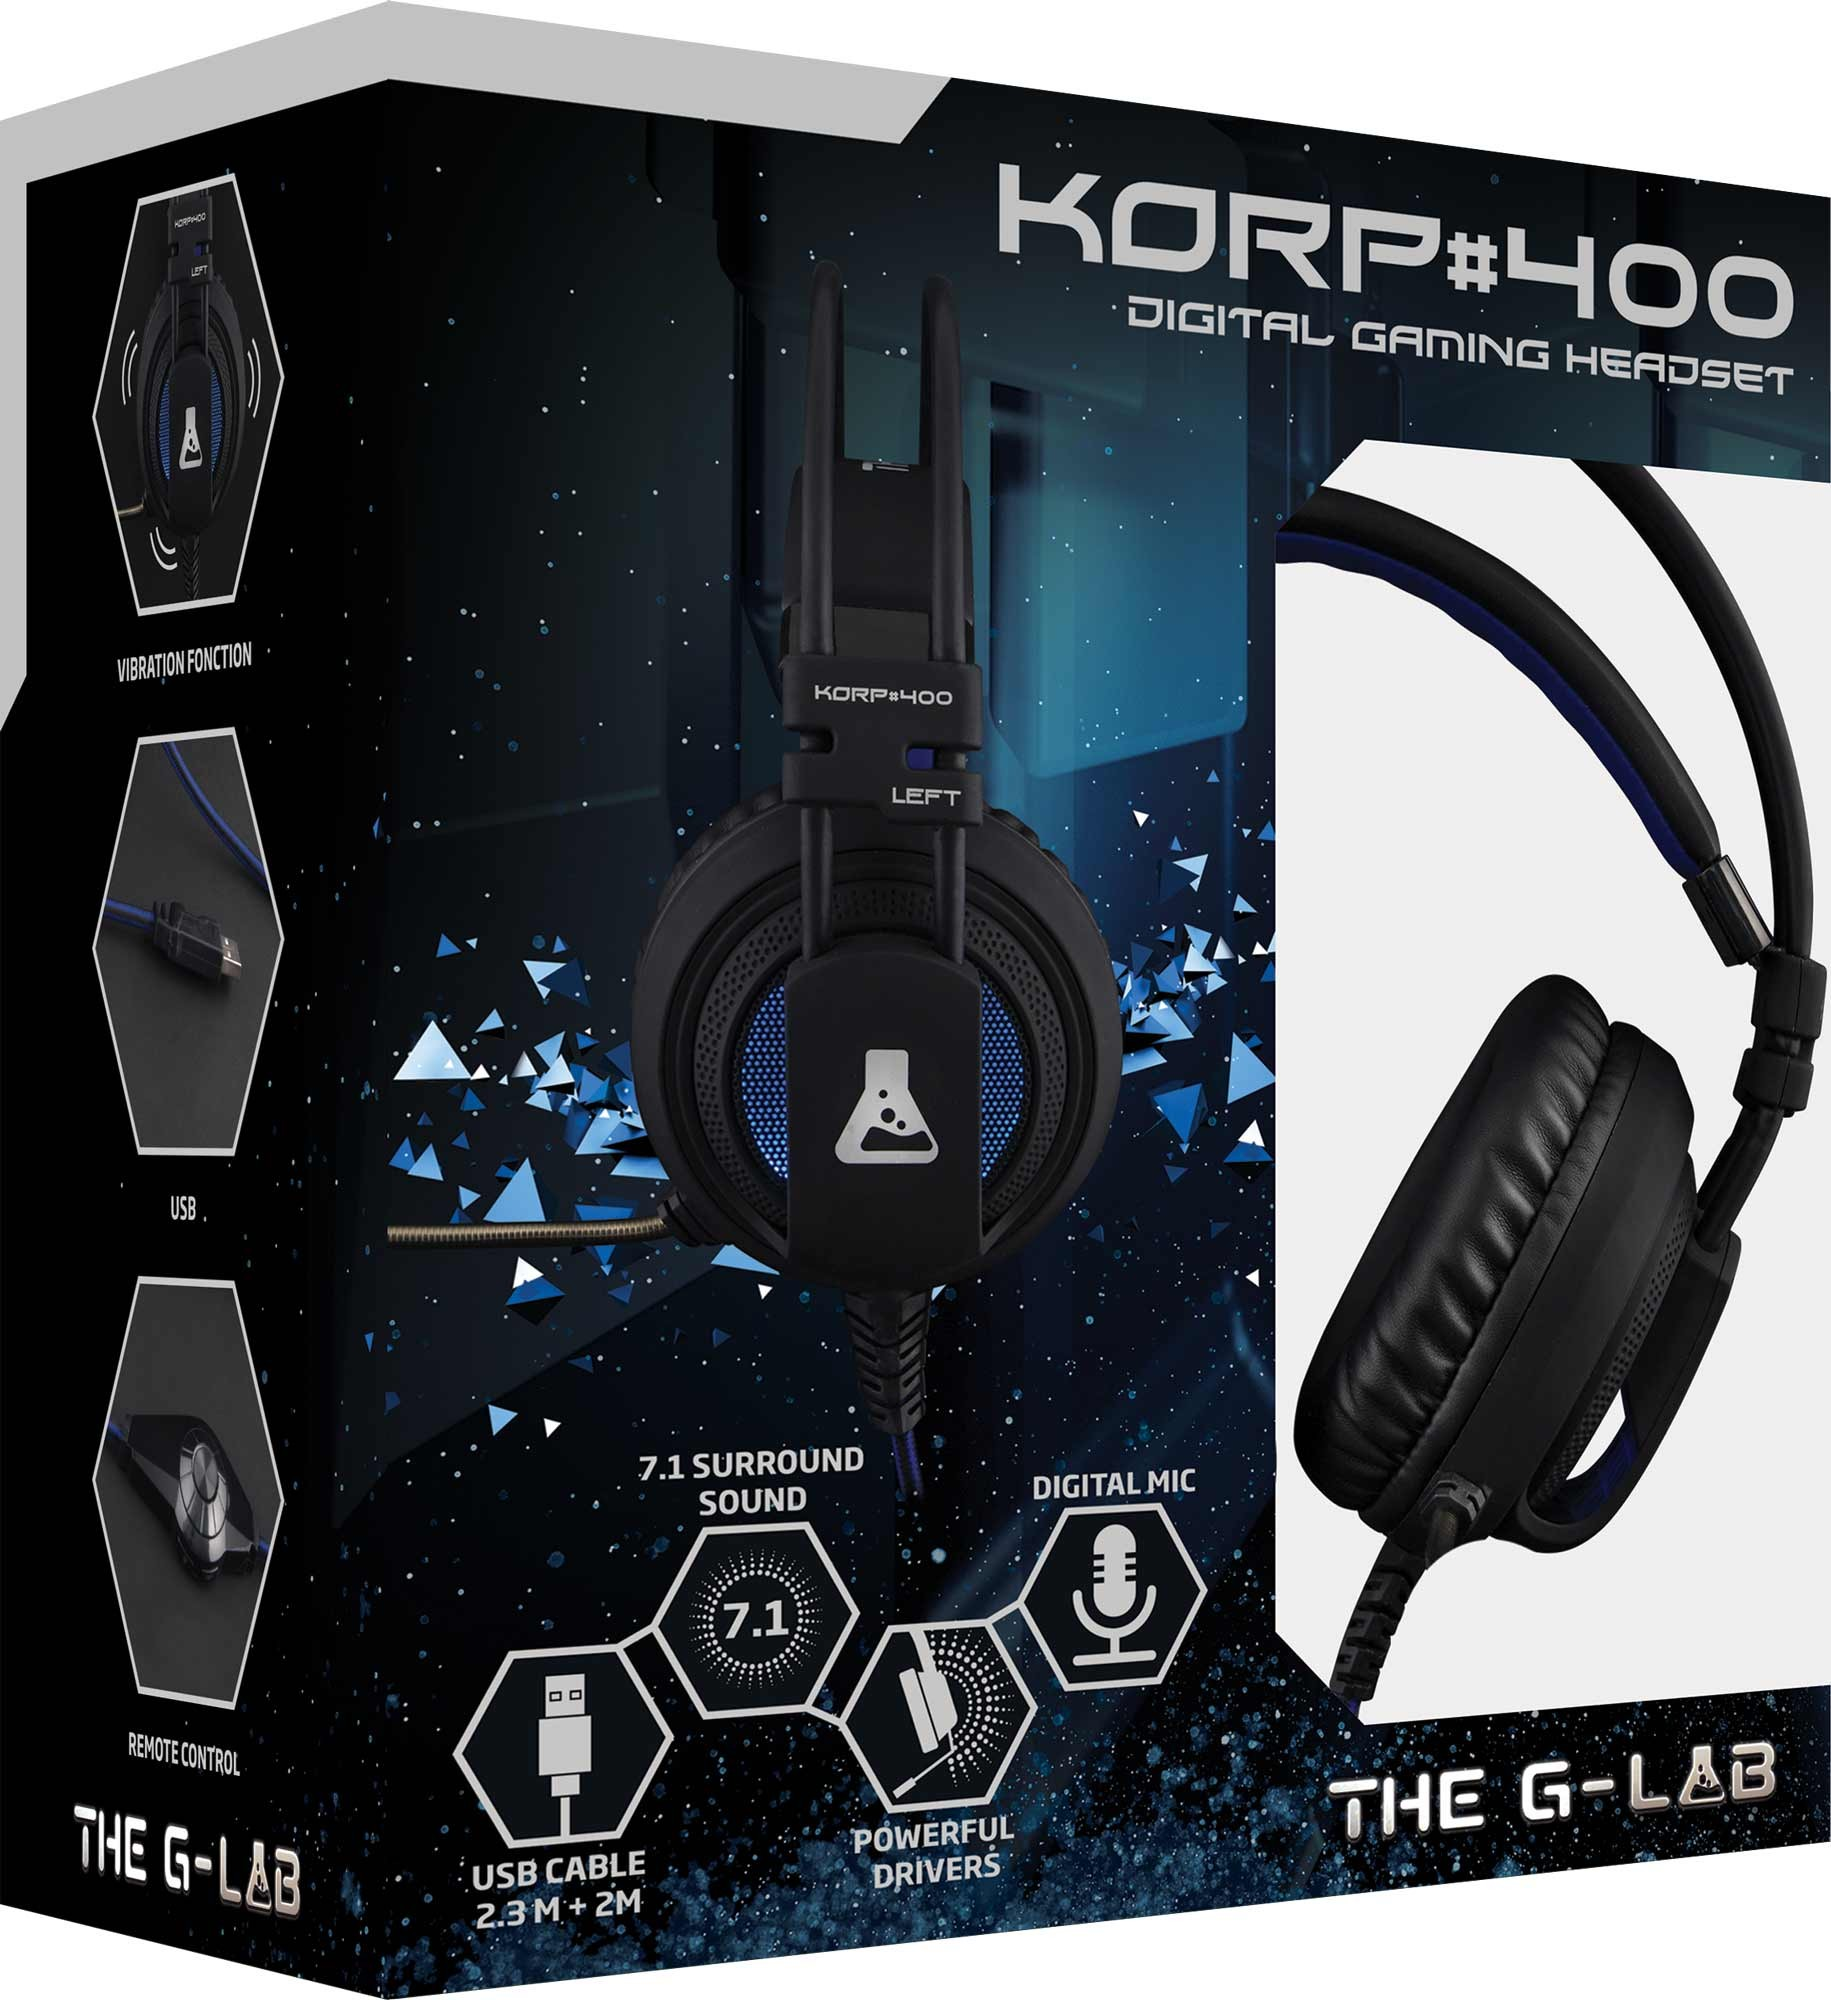 THE G-LAB - KORP 400